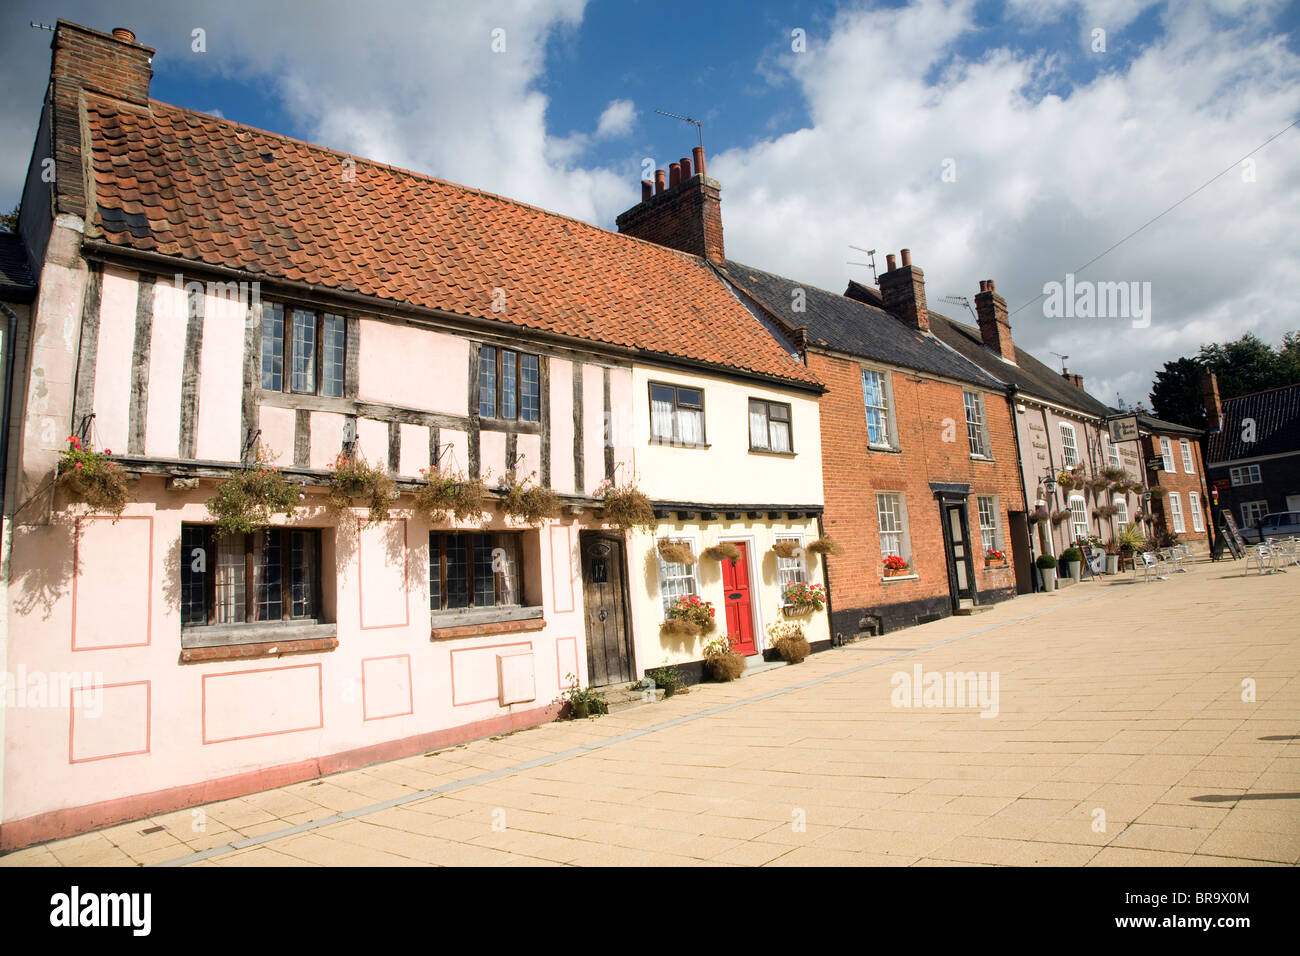 Buildings Old Market, Beccles, Suffolk, England - Stock Image